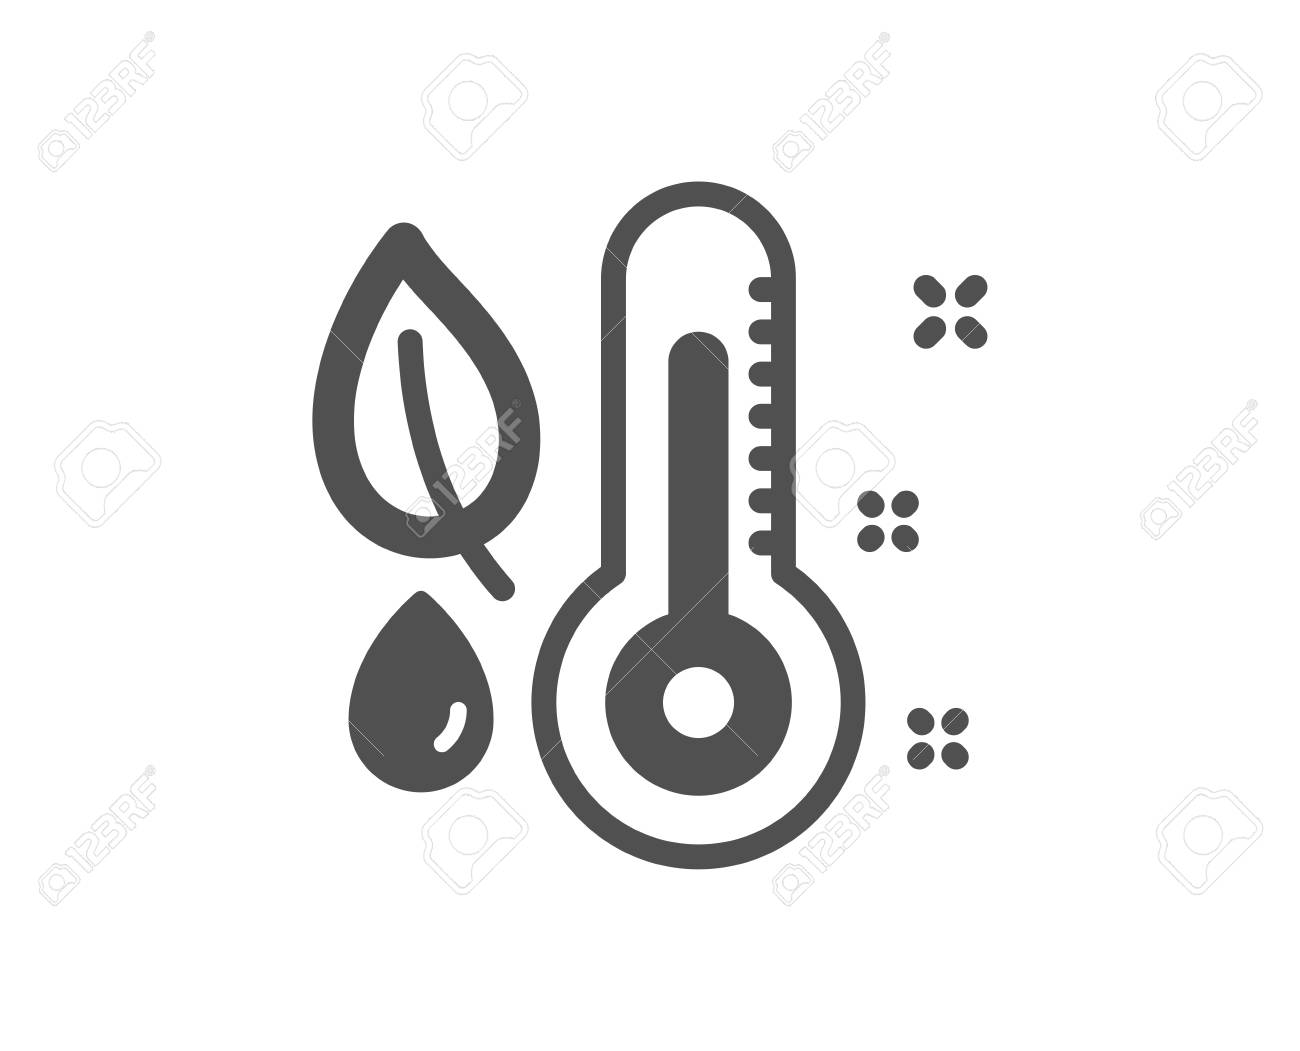 Thermometer icon. Humidity and leaf sign. Moisture symbol. Quality design element. Classic style icon. Vector - 126673597